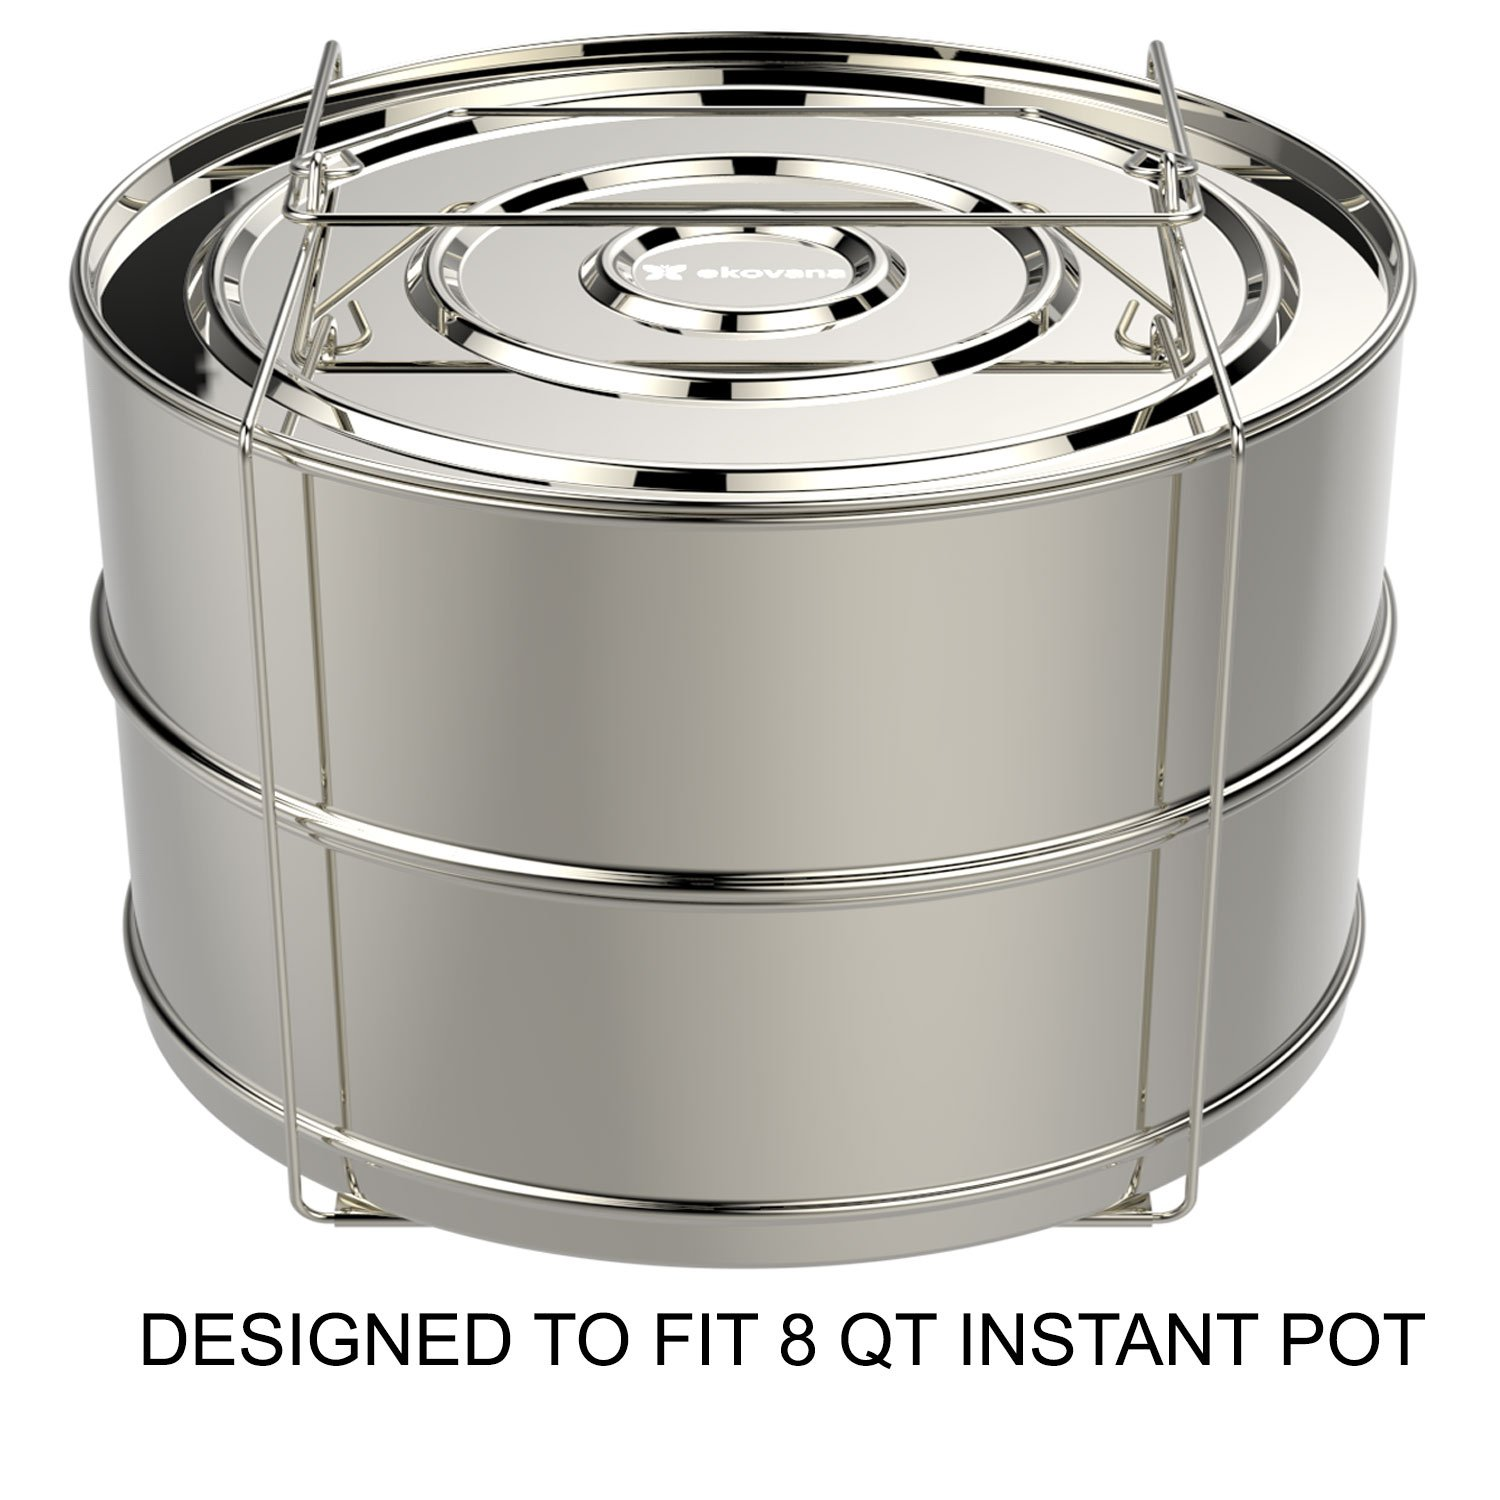 ekovana Stackable Stainless Steel Pressure Cooker Steamer Insert Pans with sling - Large - compatible with 8 qt Instant Pot Accessories by ekovana (Image #1)